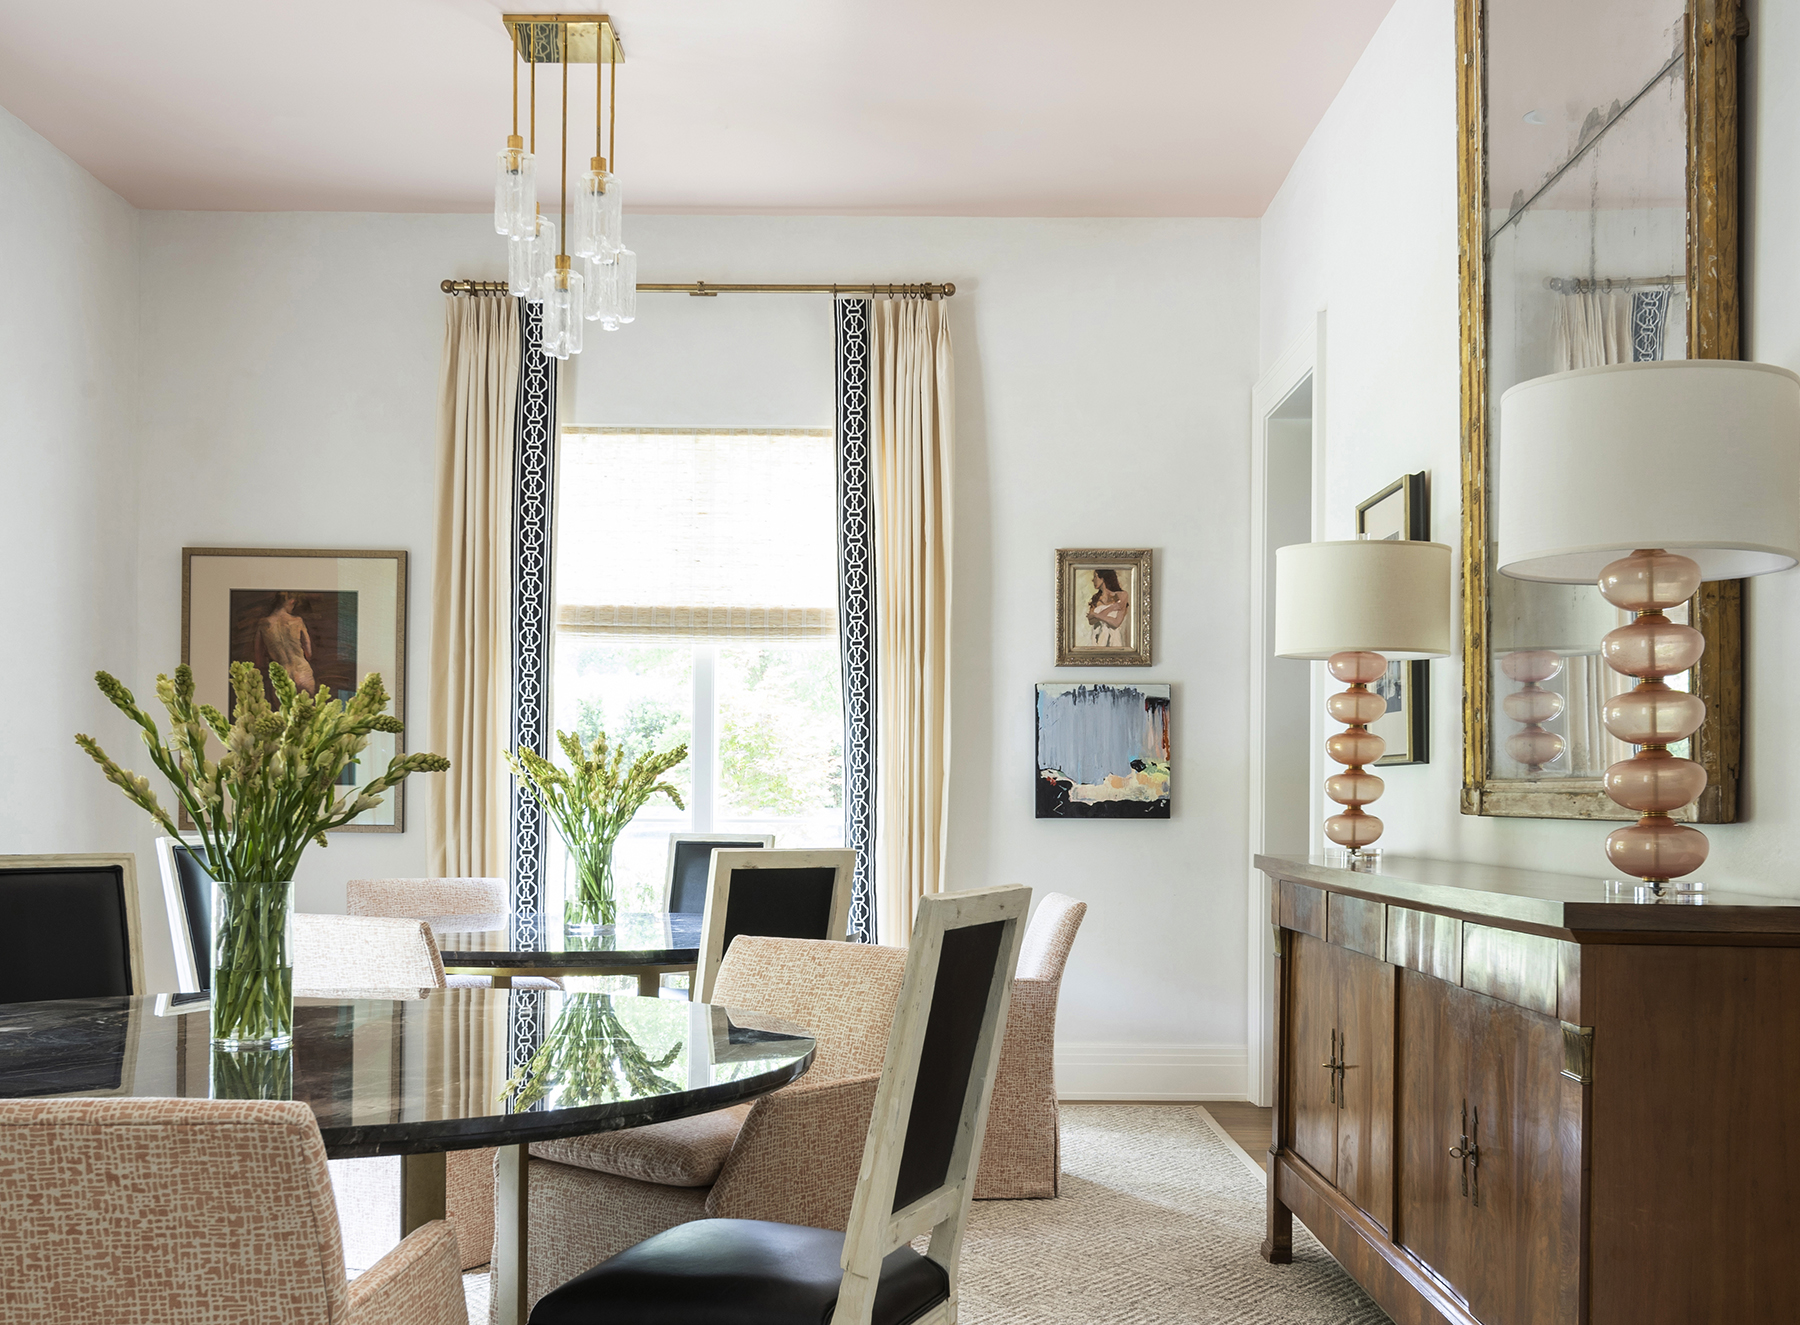 Well-lit bespoke dining room with pink accents